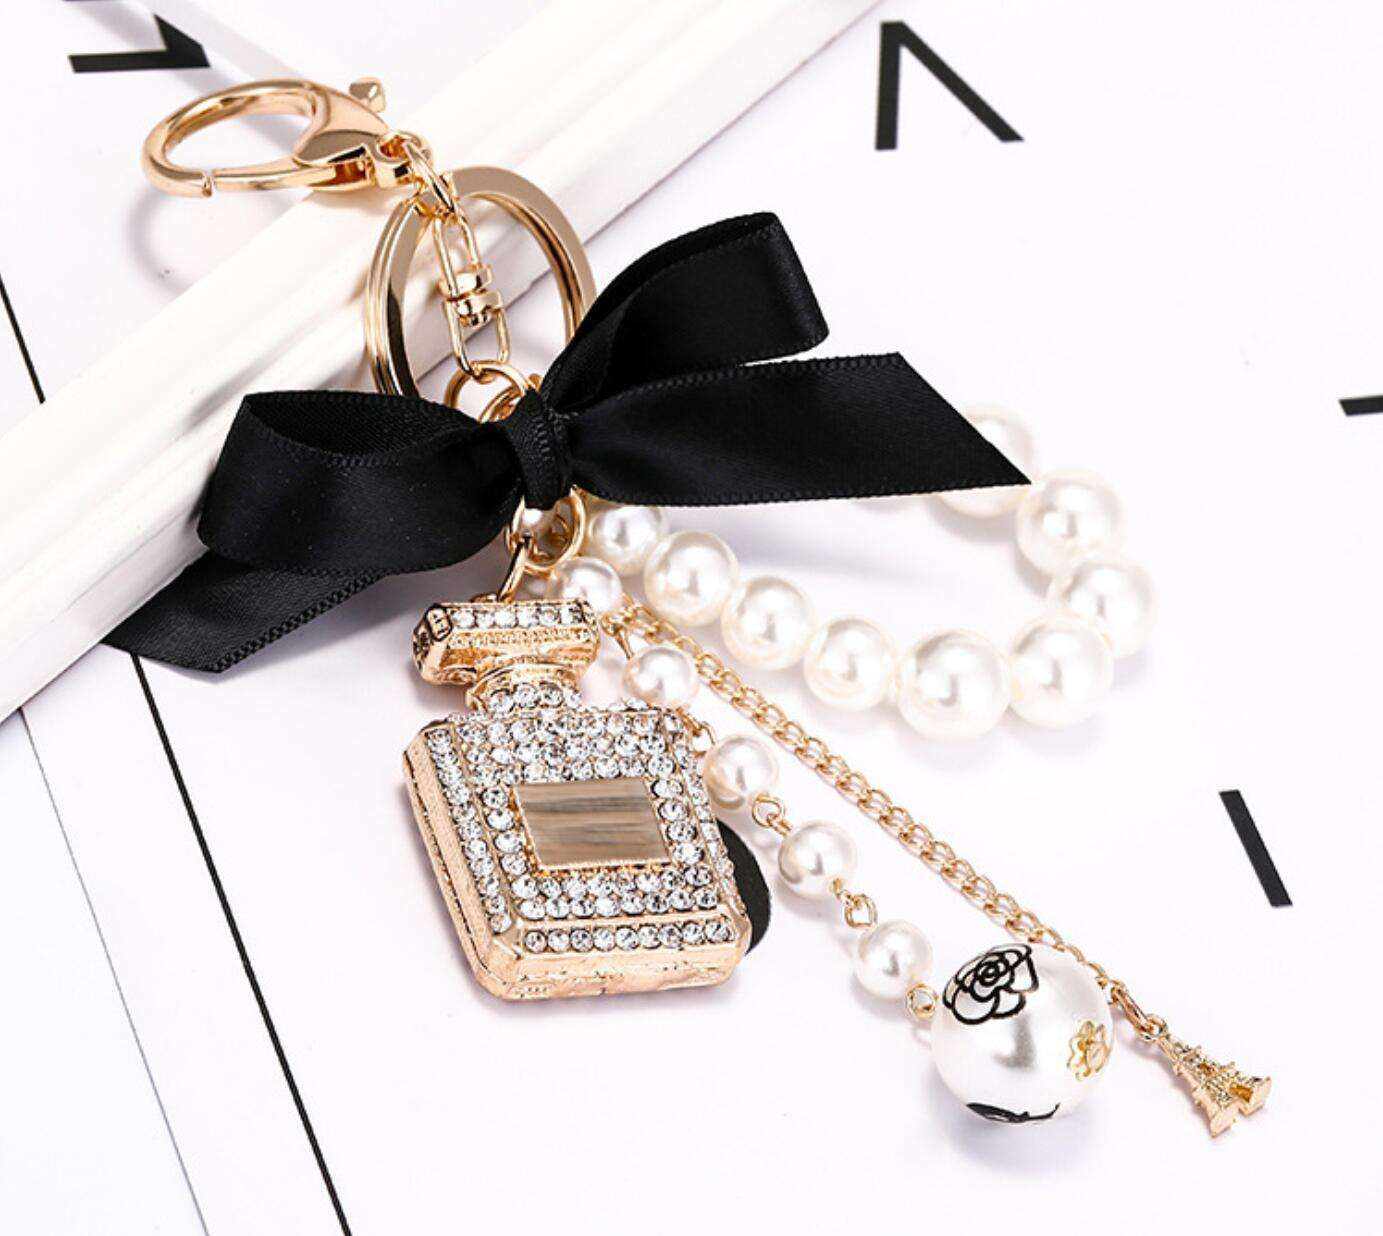 CH5456 New Design Fashion Bottle keychains Korean style pearls keychains Gold plated key chains